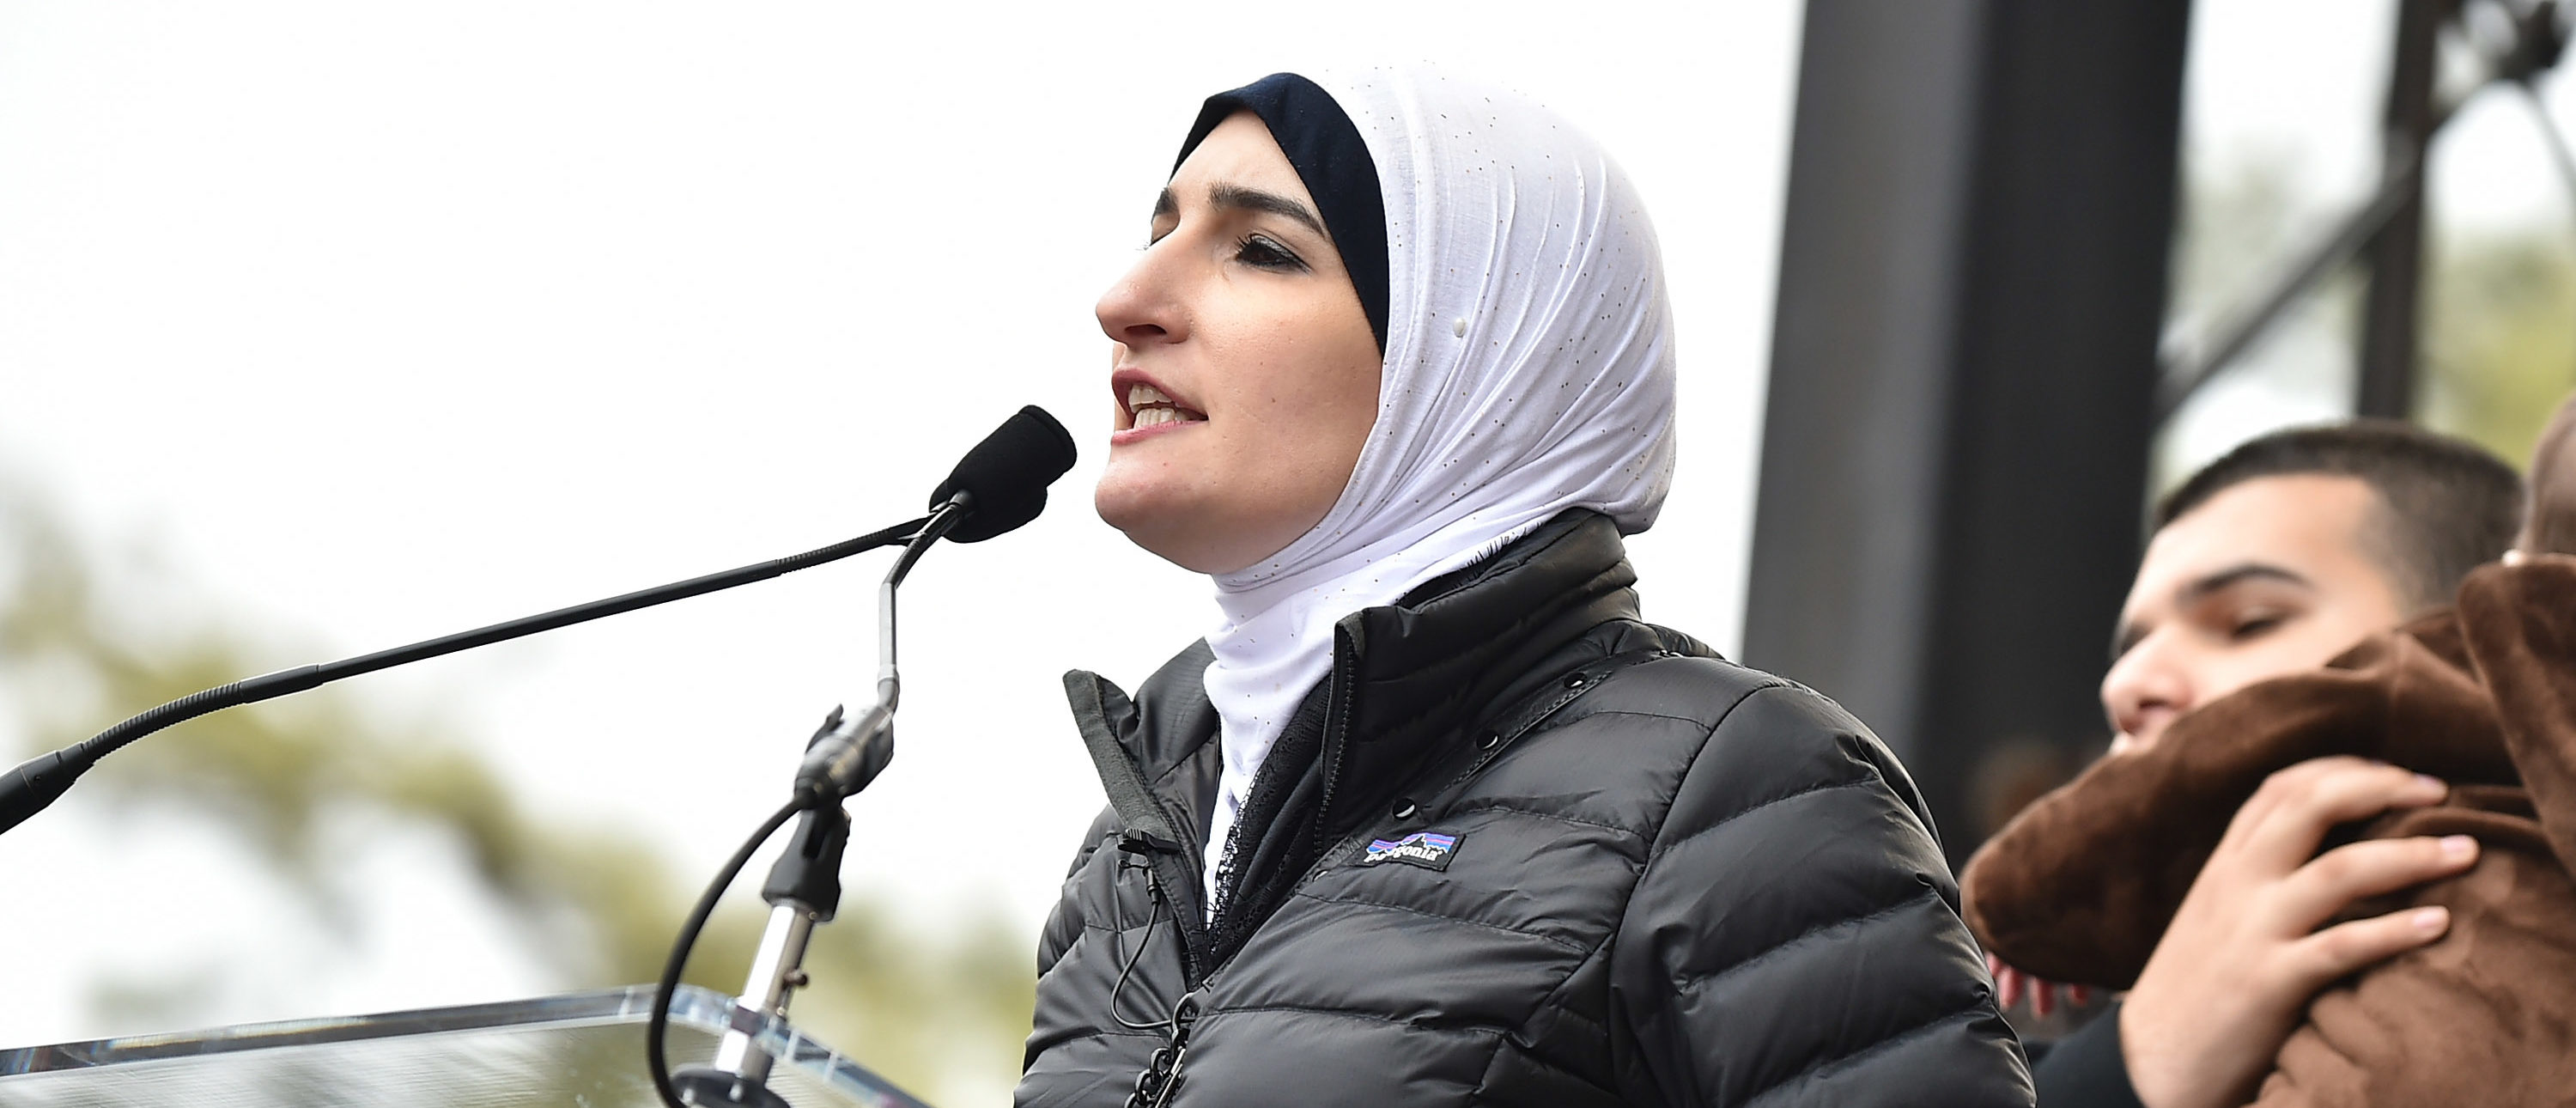 WASHINGTON, DC - JANUARY 21: Linda Sarsour speaks onstage during the Women's March on Washington on January 21, 2017 in Washington, DC. (Photo by Theo Wargo/Getty Images)